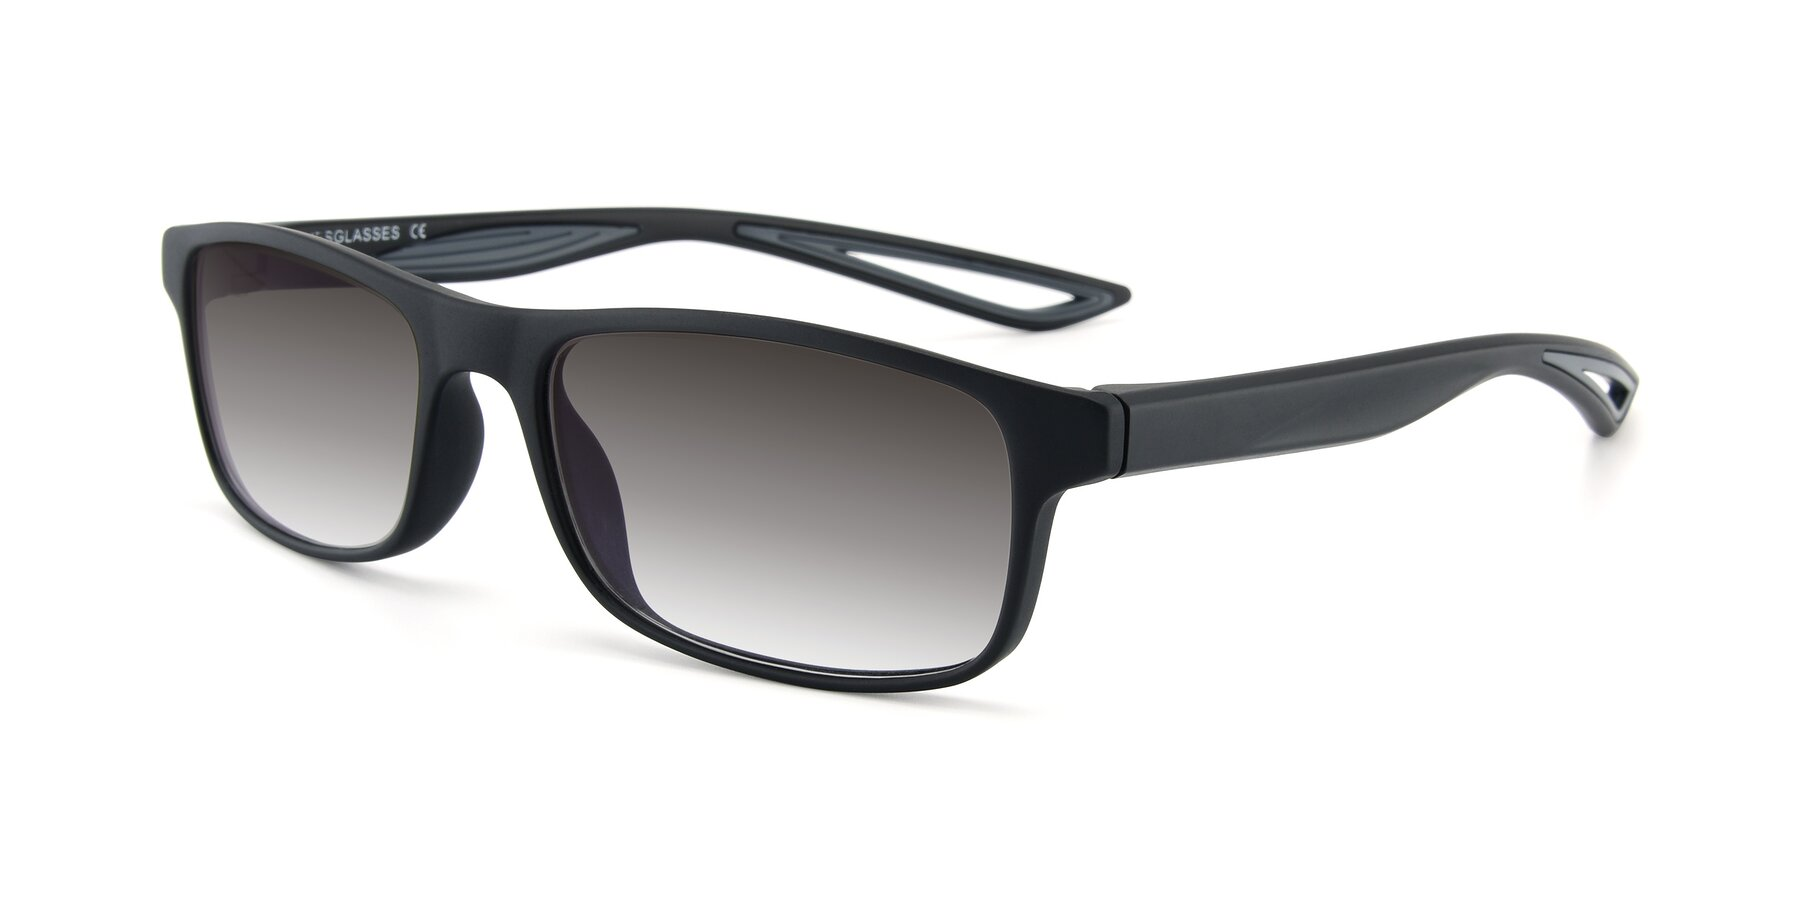 Angle of AC4679 in Matte Black-Gray with Gray Gradient Lenses